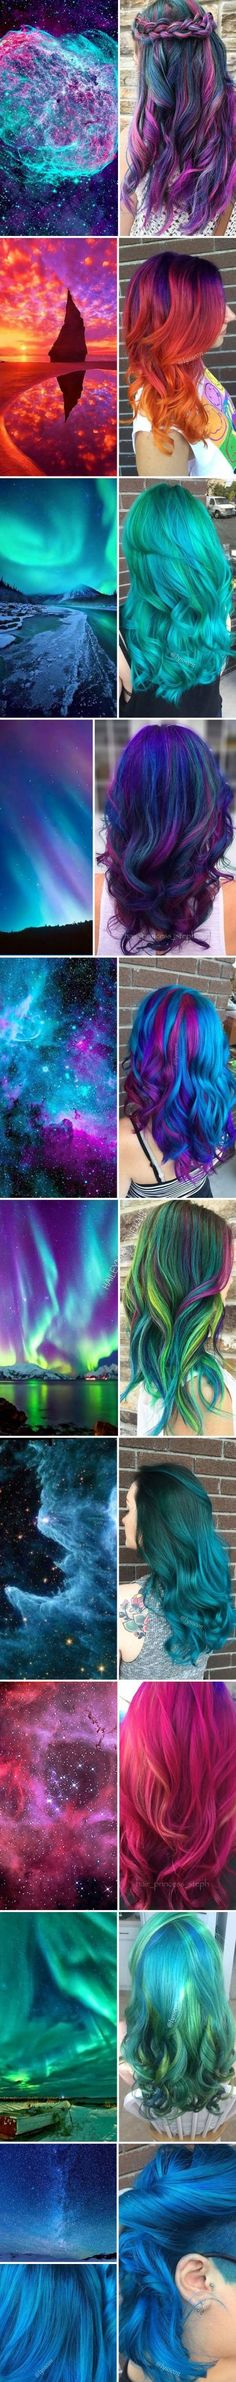 awesome Galaxy hair- various different styles of galaxy hair. I love the pastel and rain...